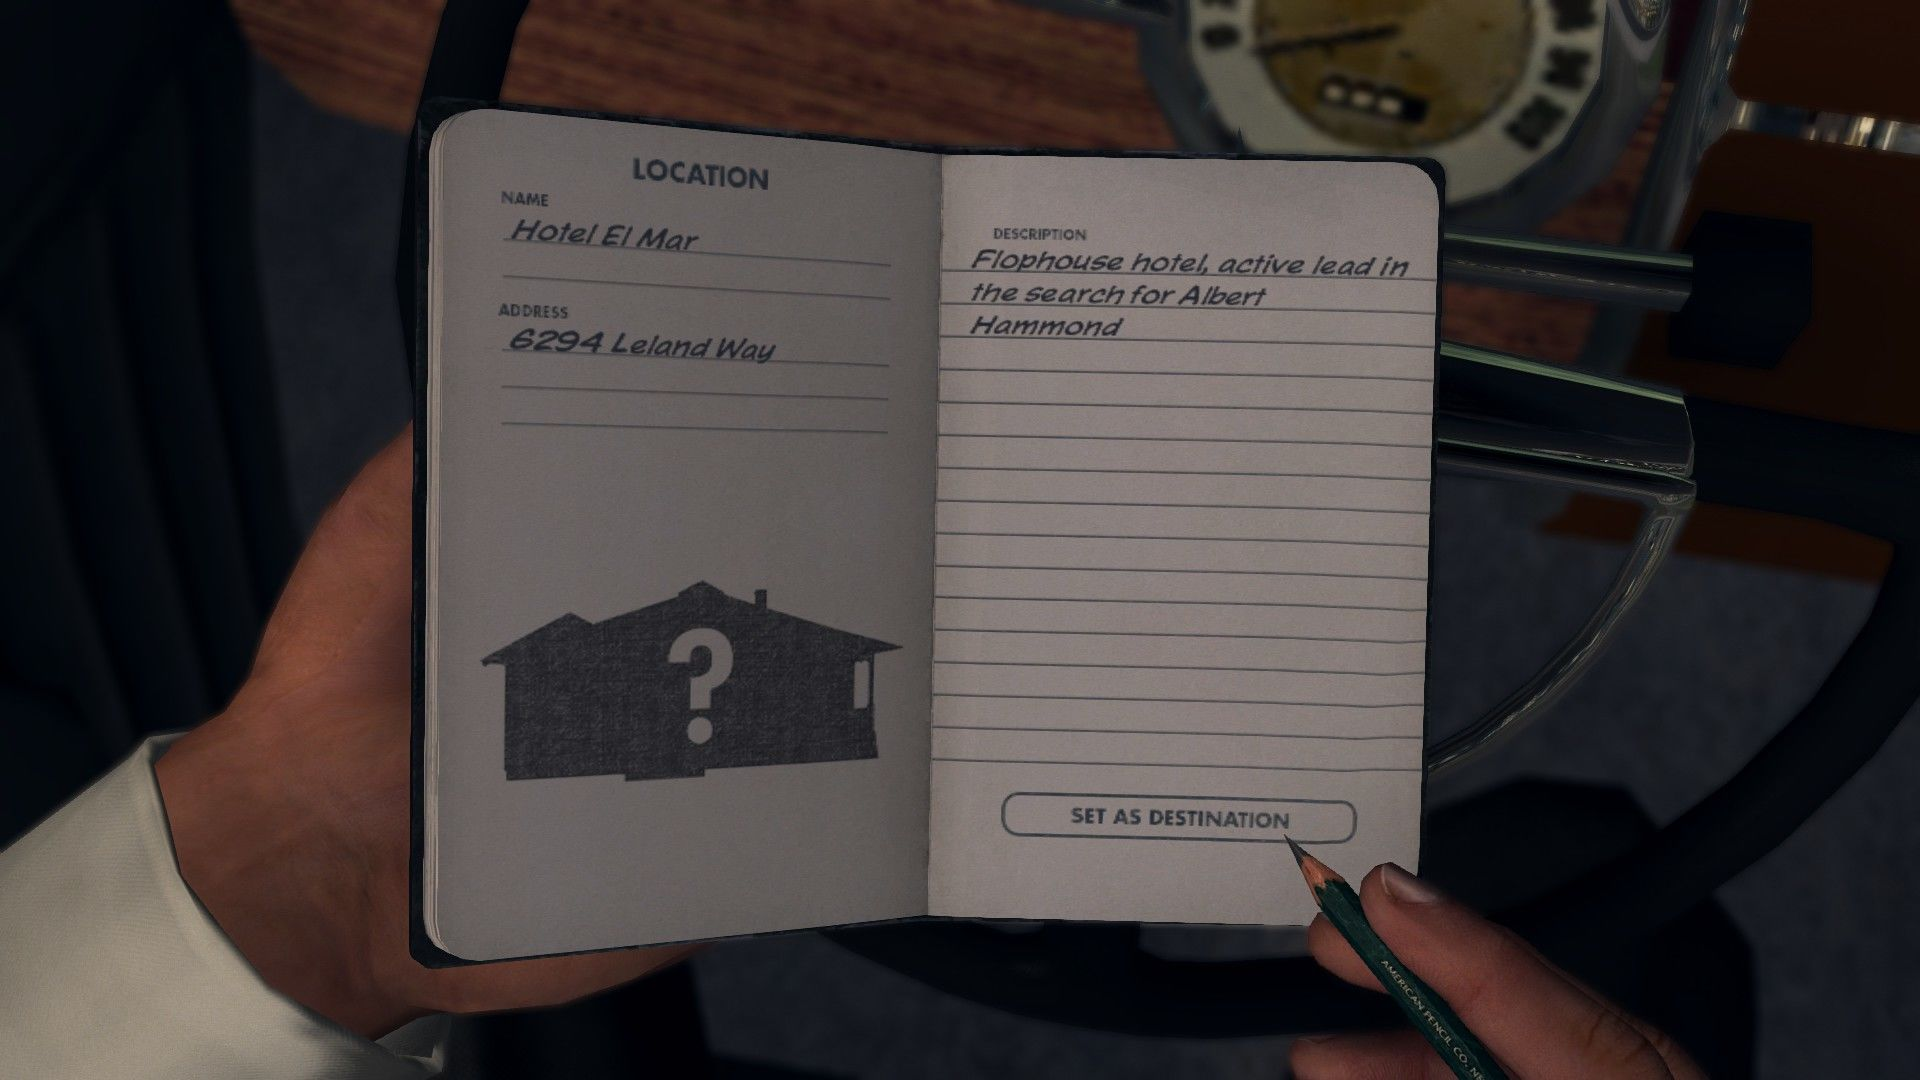 L.A. Noire: The Complete Edition Windows The case-related locations are listed in your notebook.